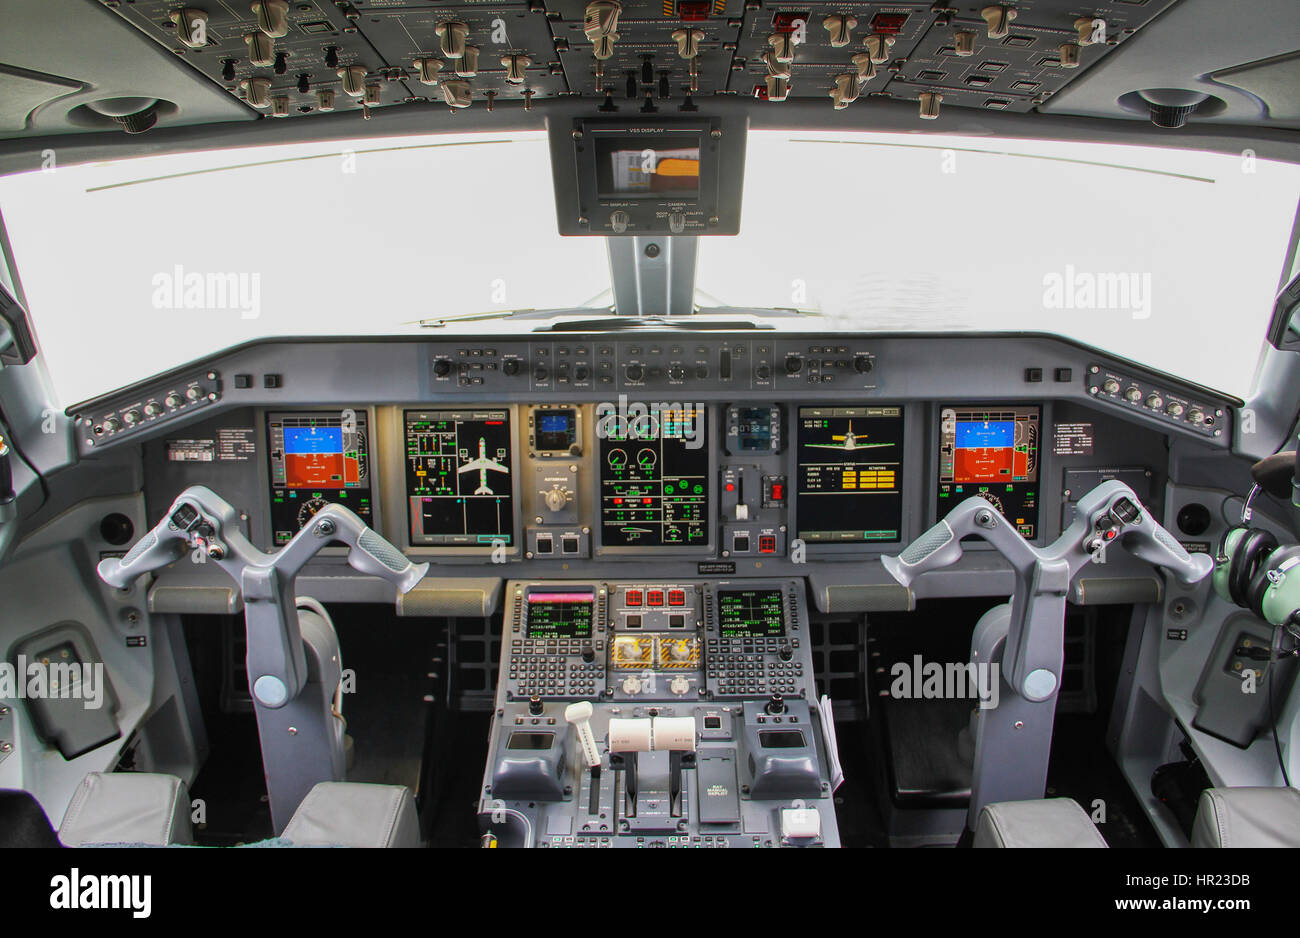 plane interior, cockpit view inside the airliner - Stock Image